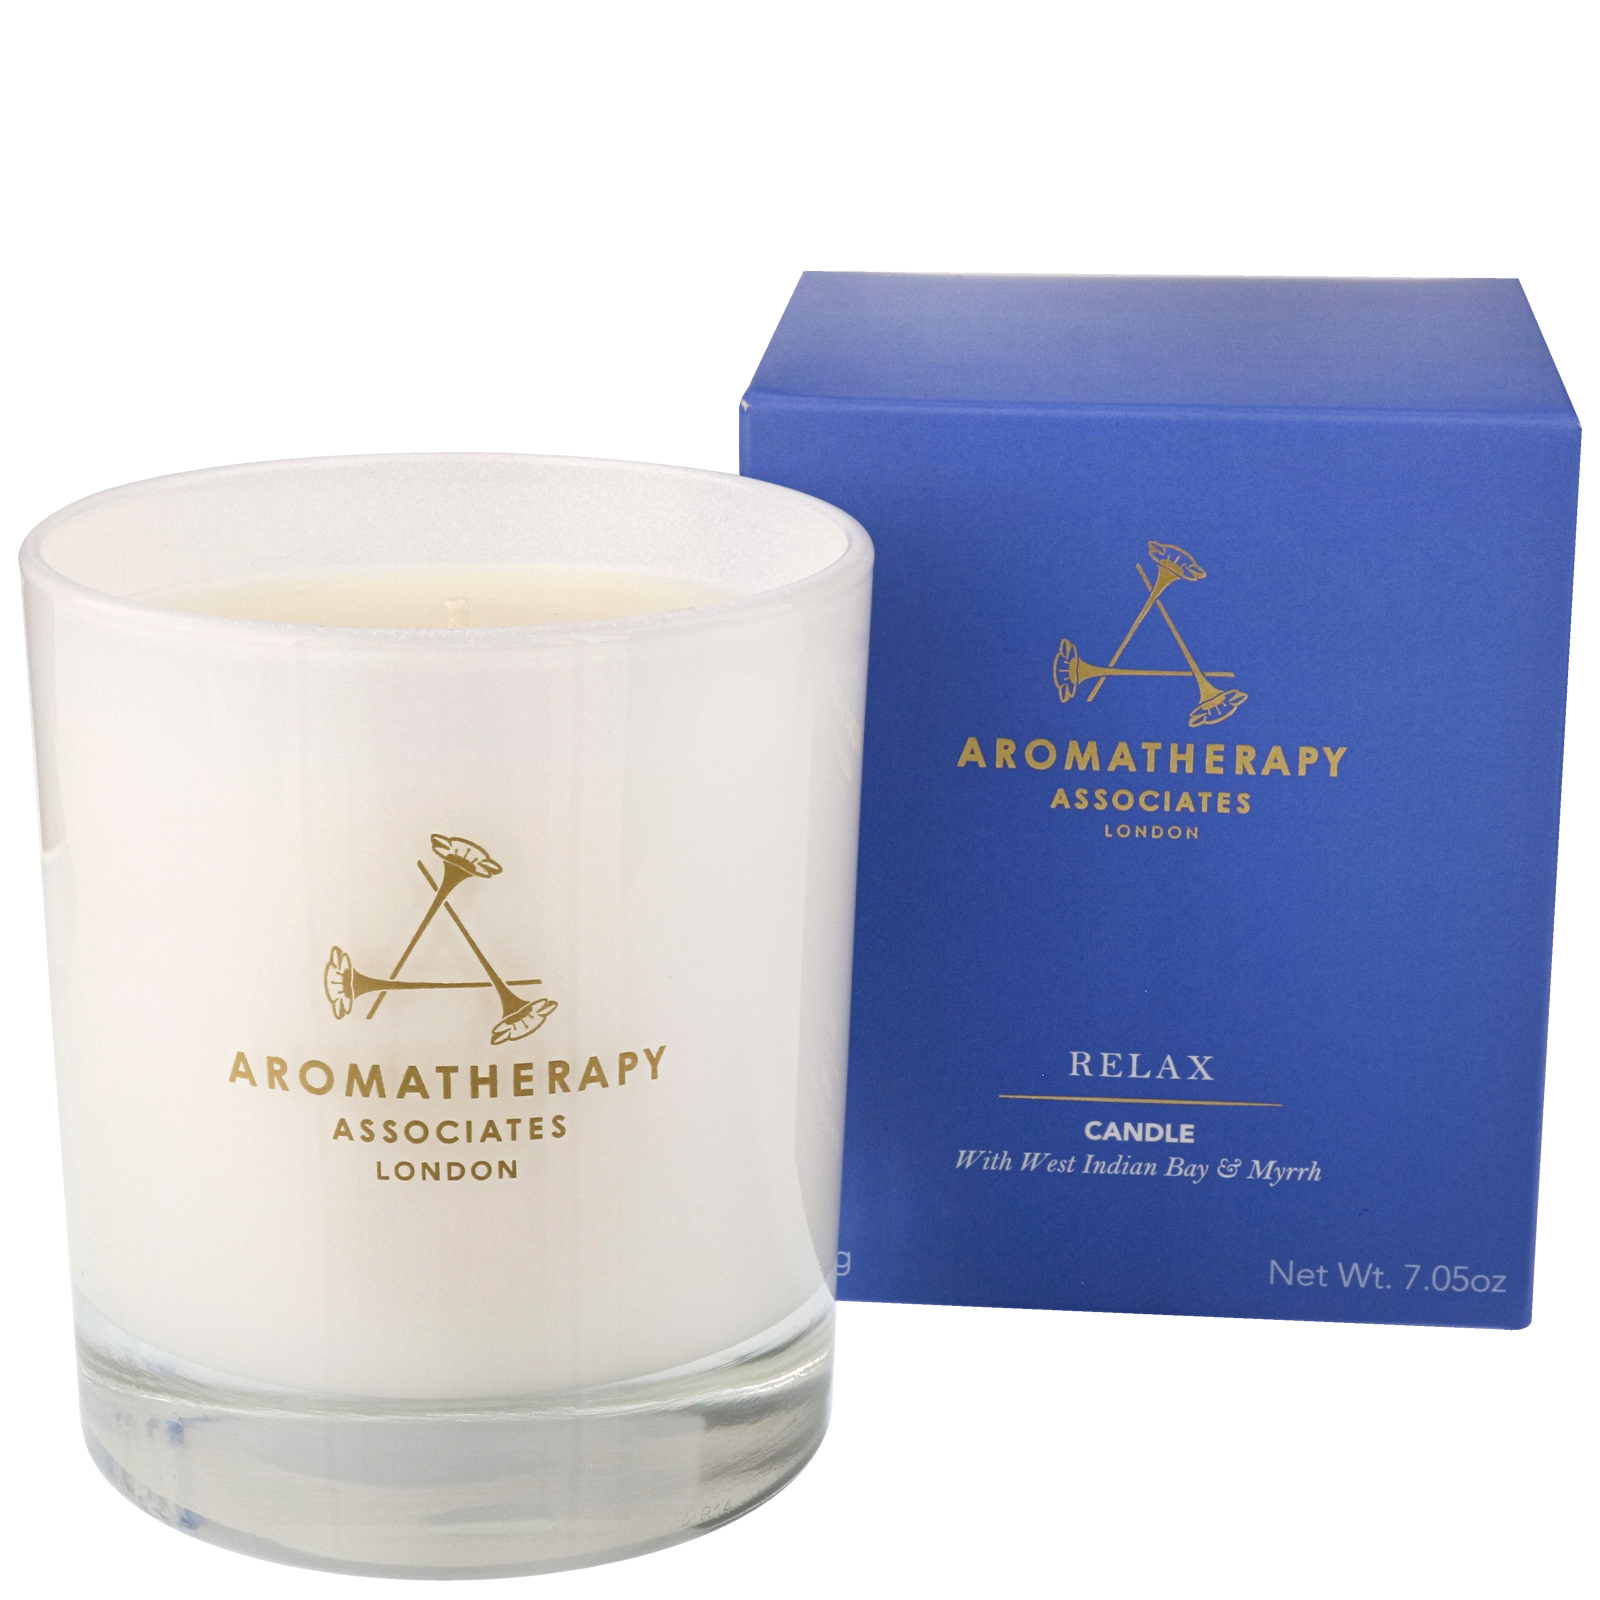 The Relax Candle We Adore